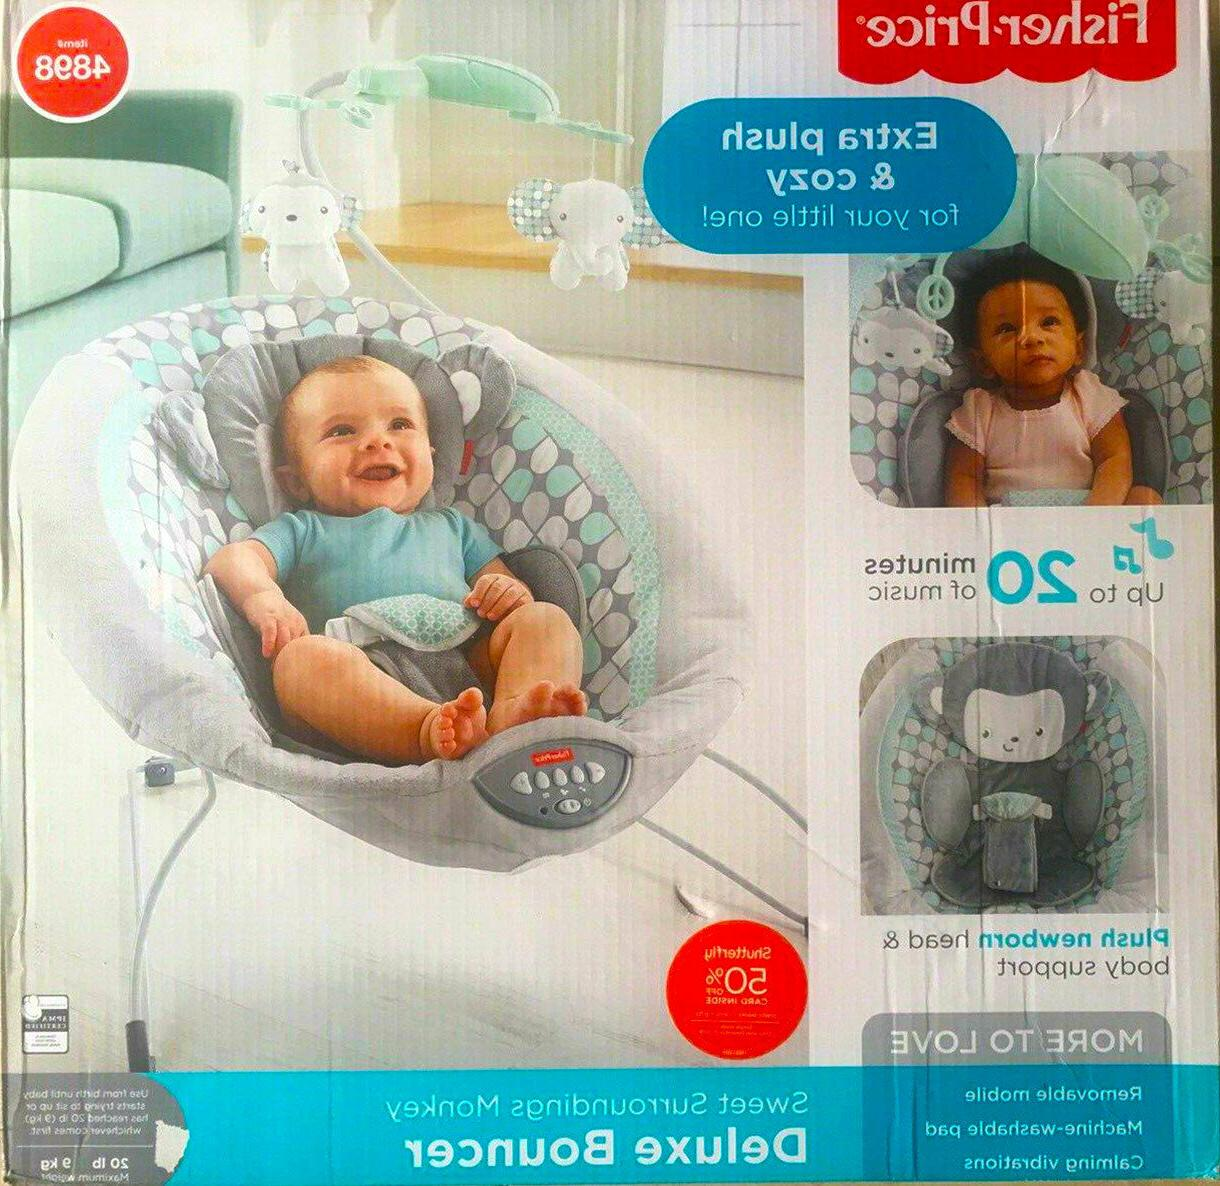 Fisher-Price Deluxe Newborn Vibrating Rock n' Play Sleeper,